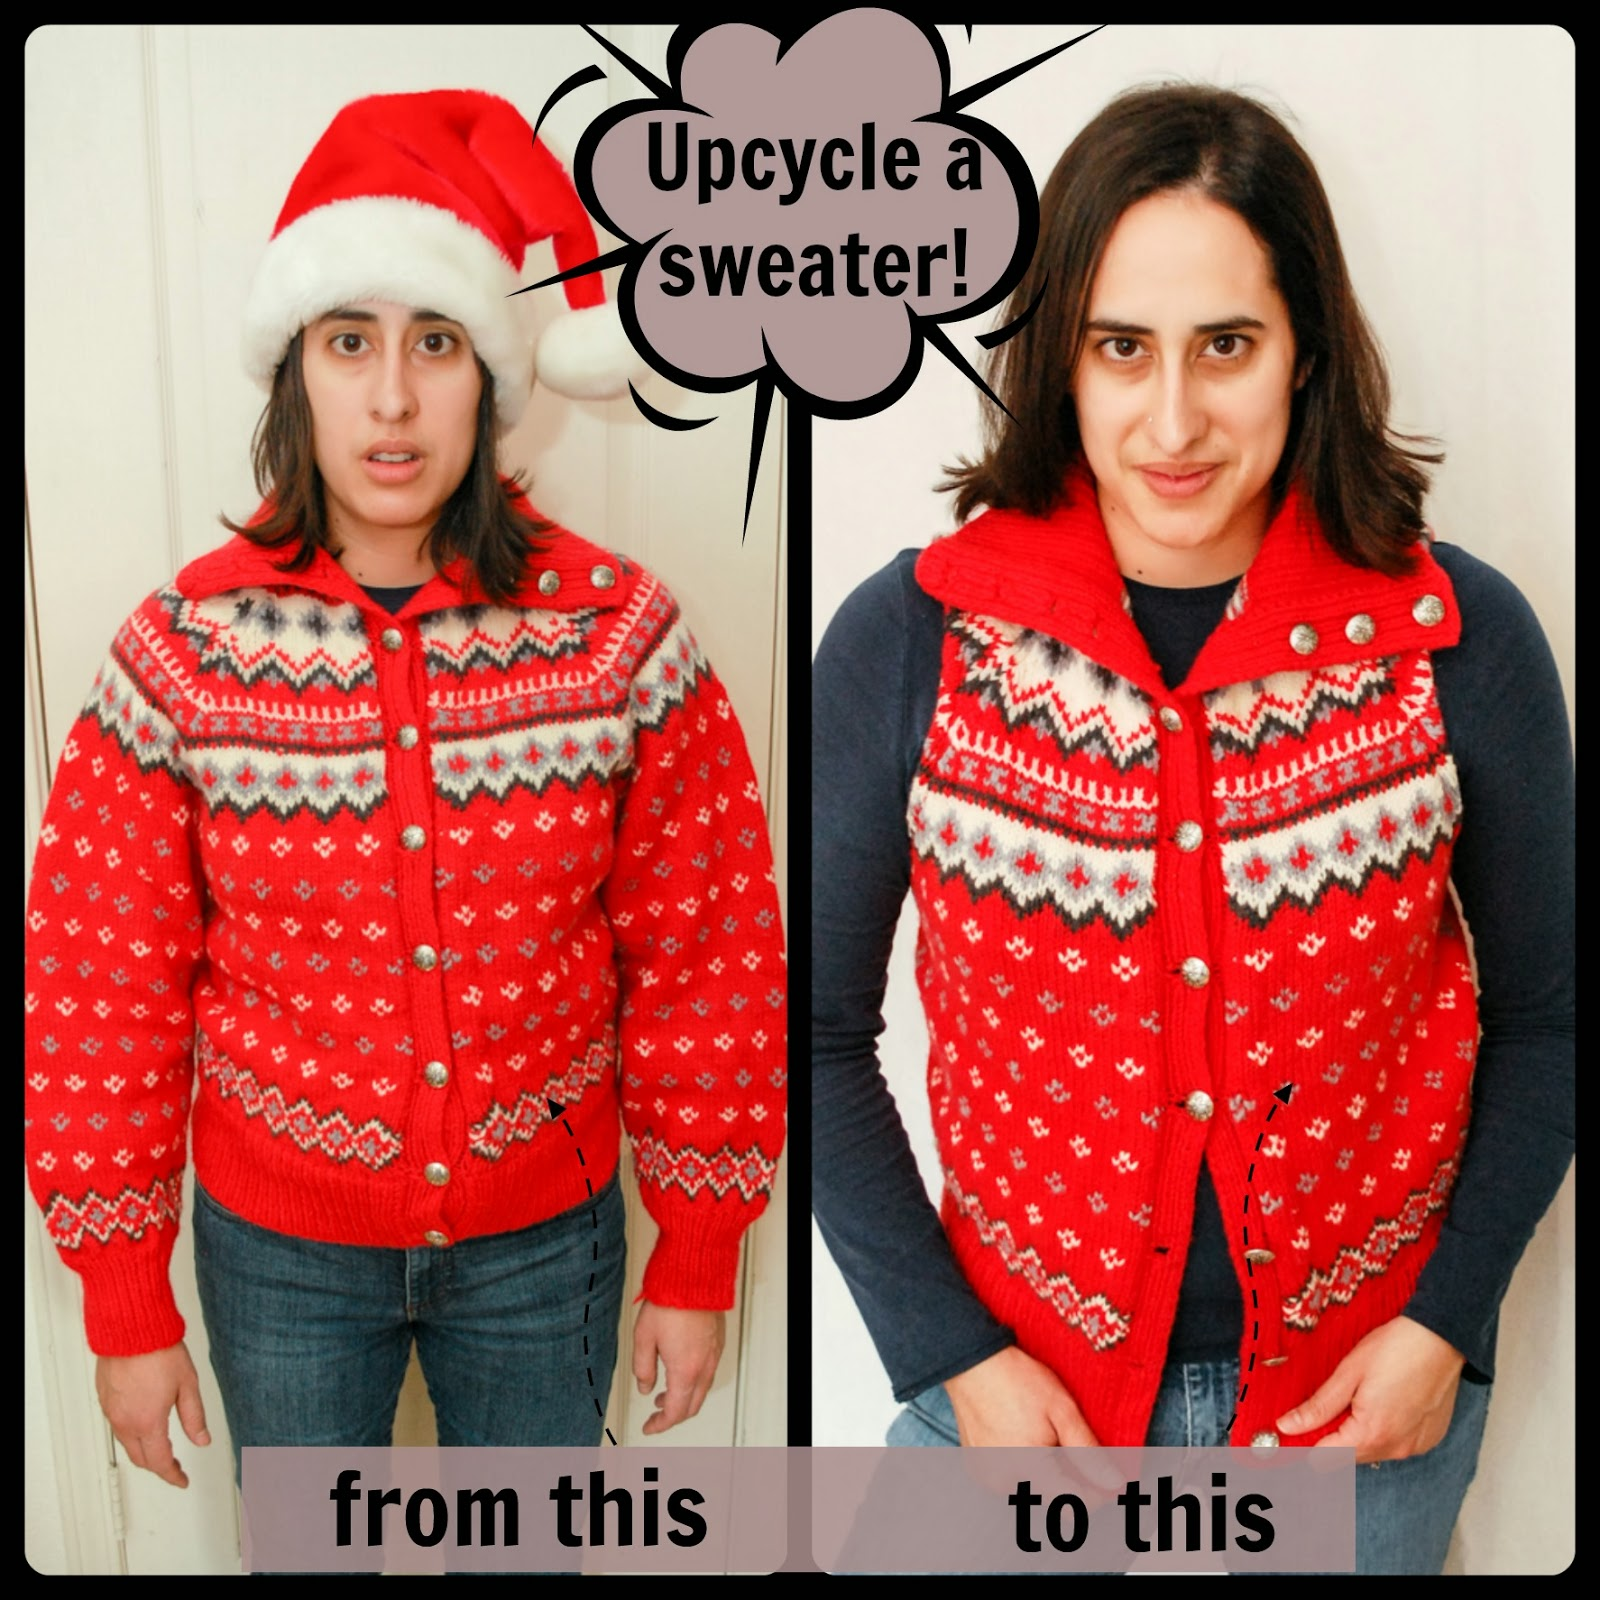 6 Ways To Transform A Sweater Into New Clothing - diy Thought